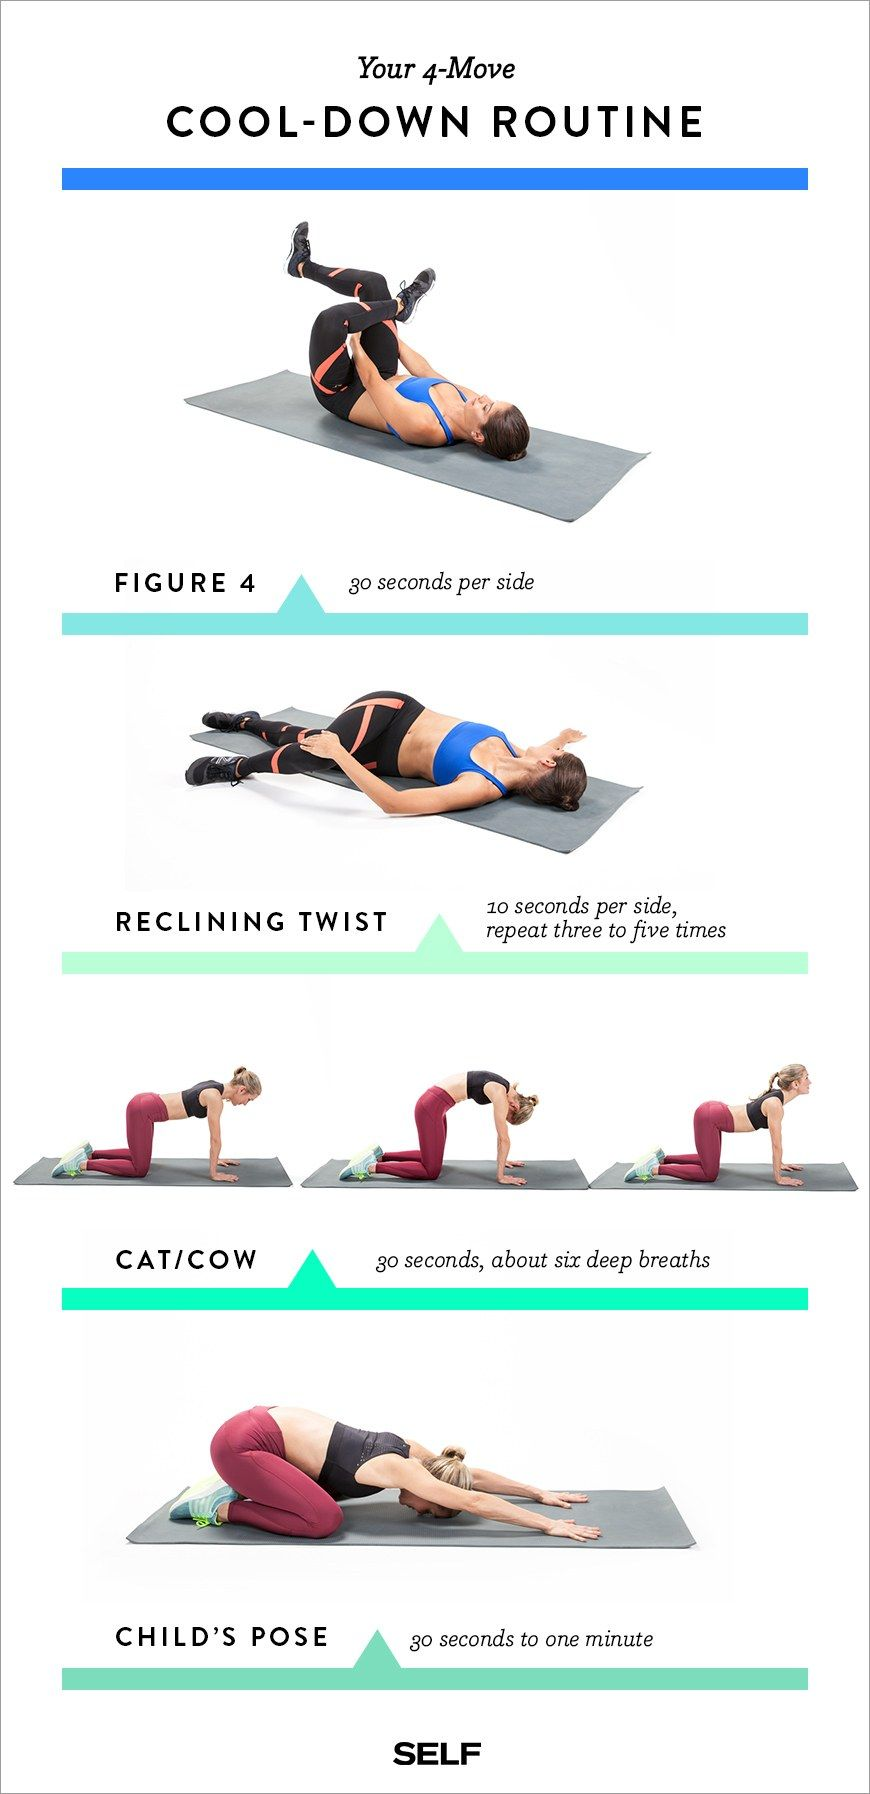 4 Cool Down Stretches For After Your Workout That Feel Ridiculously Good Cool Down Stretches Stretches Before Workout After Workout Stretches